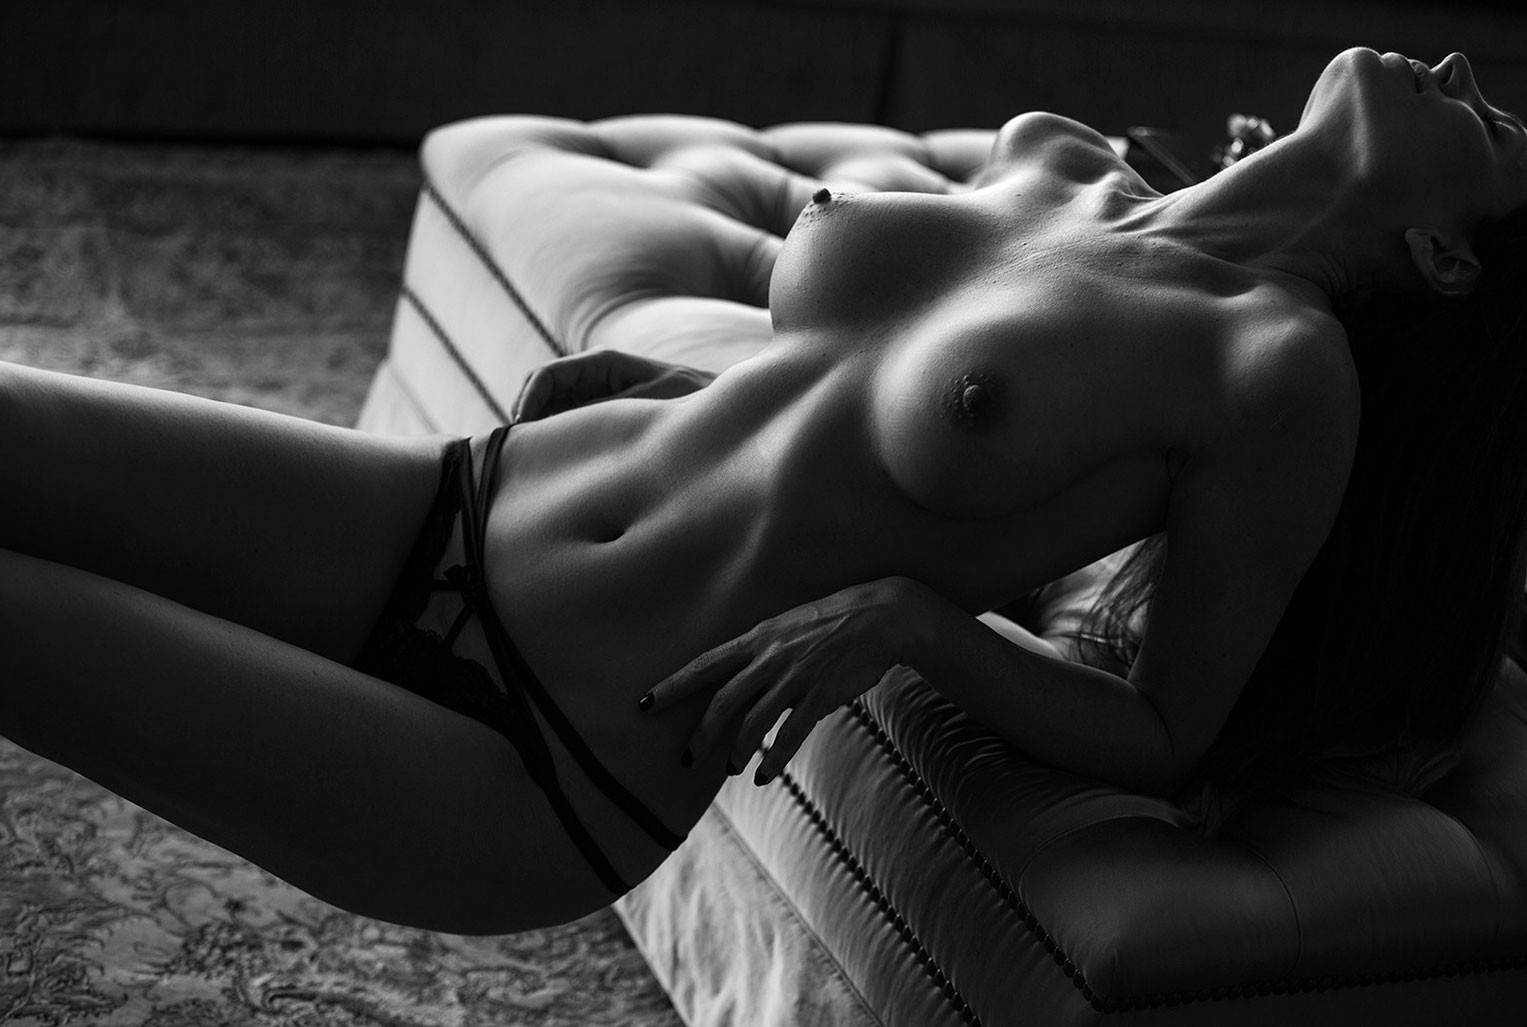 Nude and Erotic photography by Rocky Batchelor